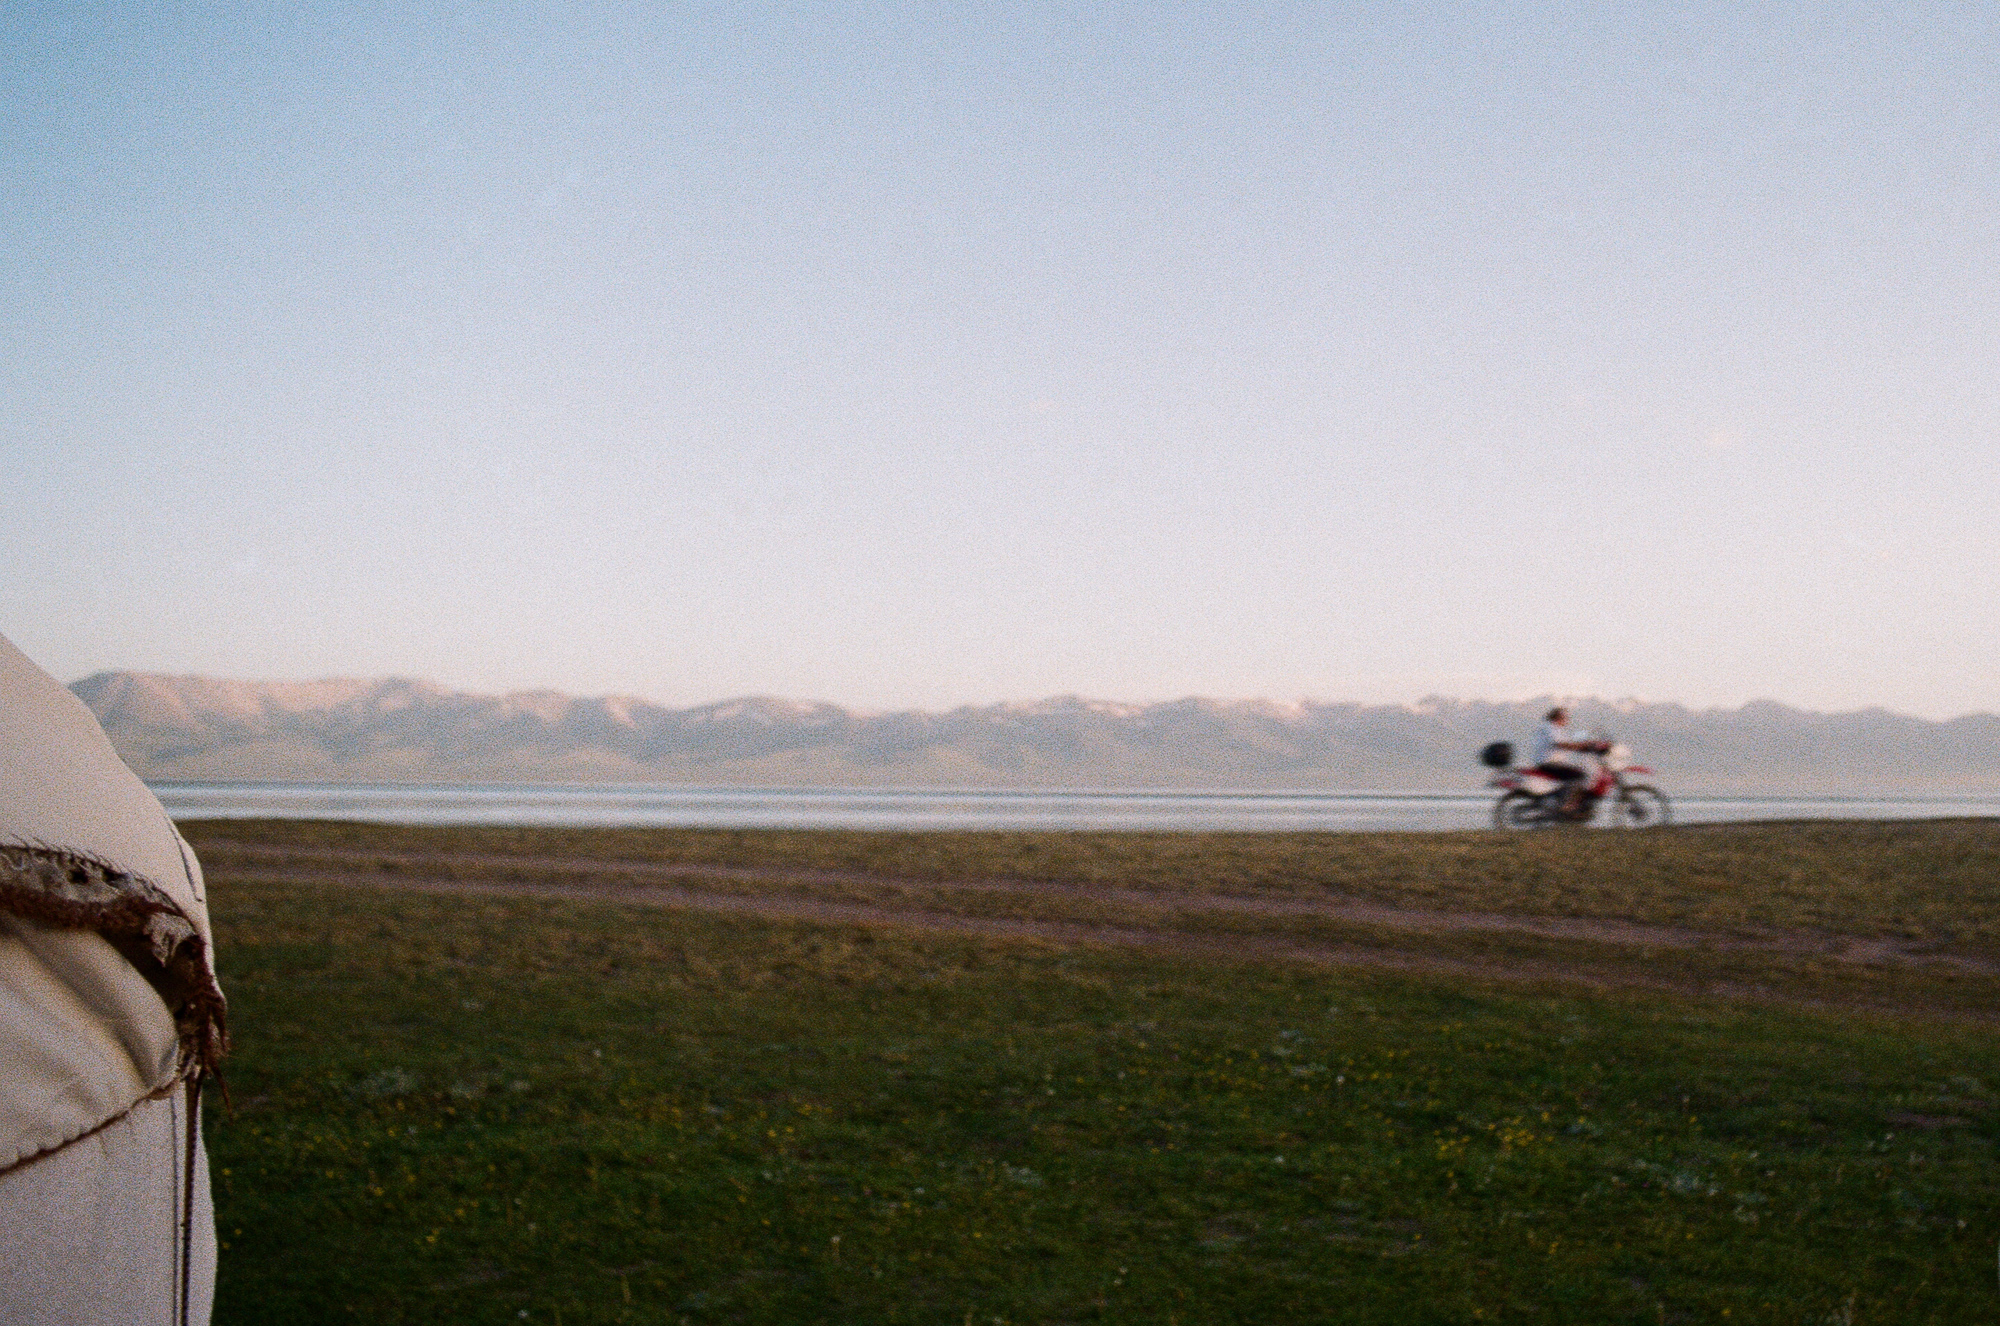 Evening at a yurt camp surrounded by ridges